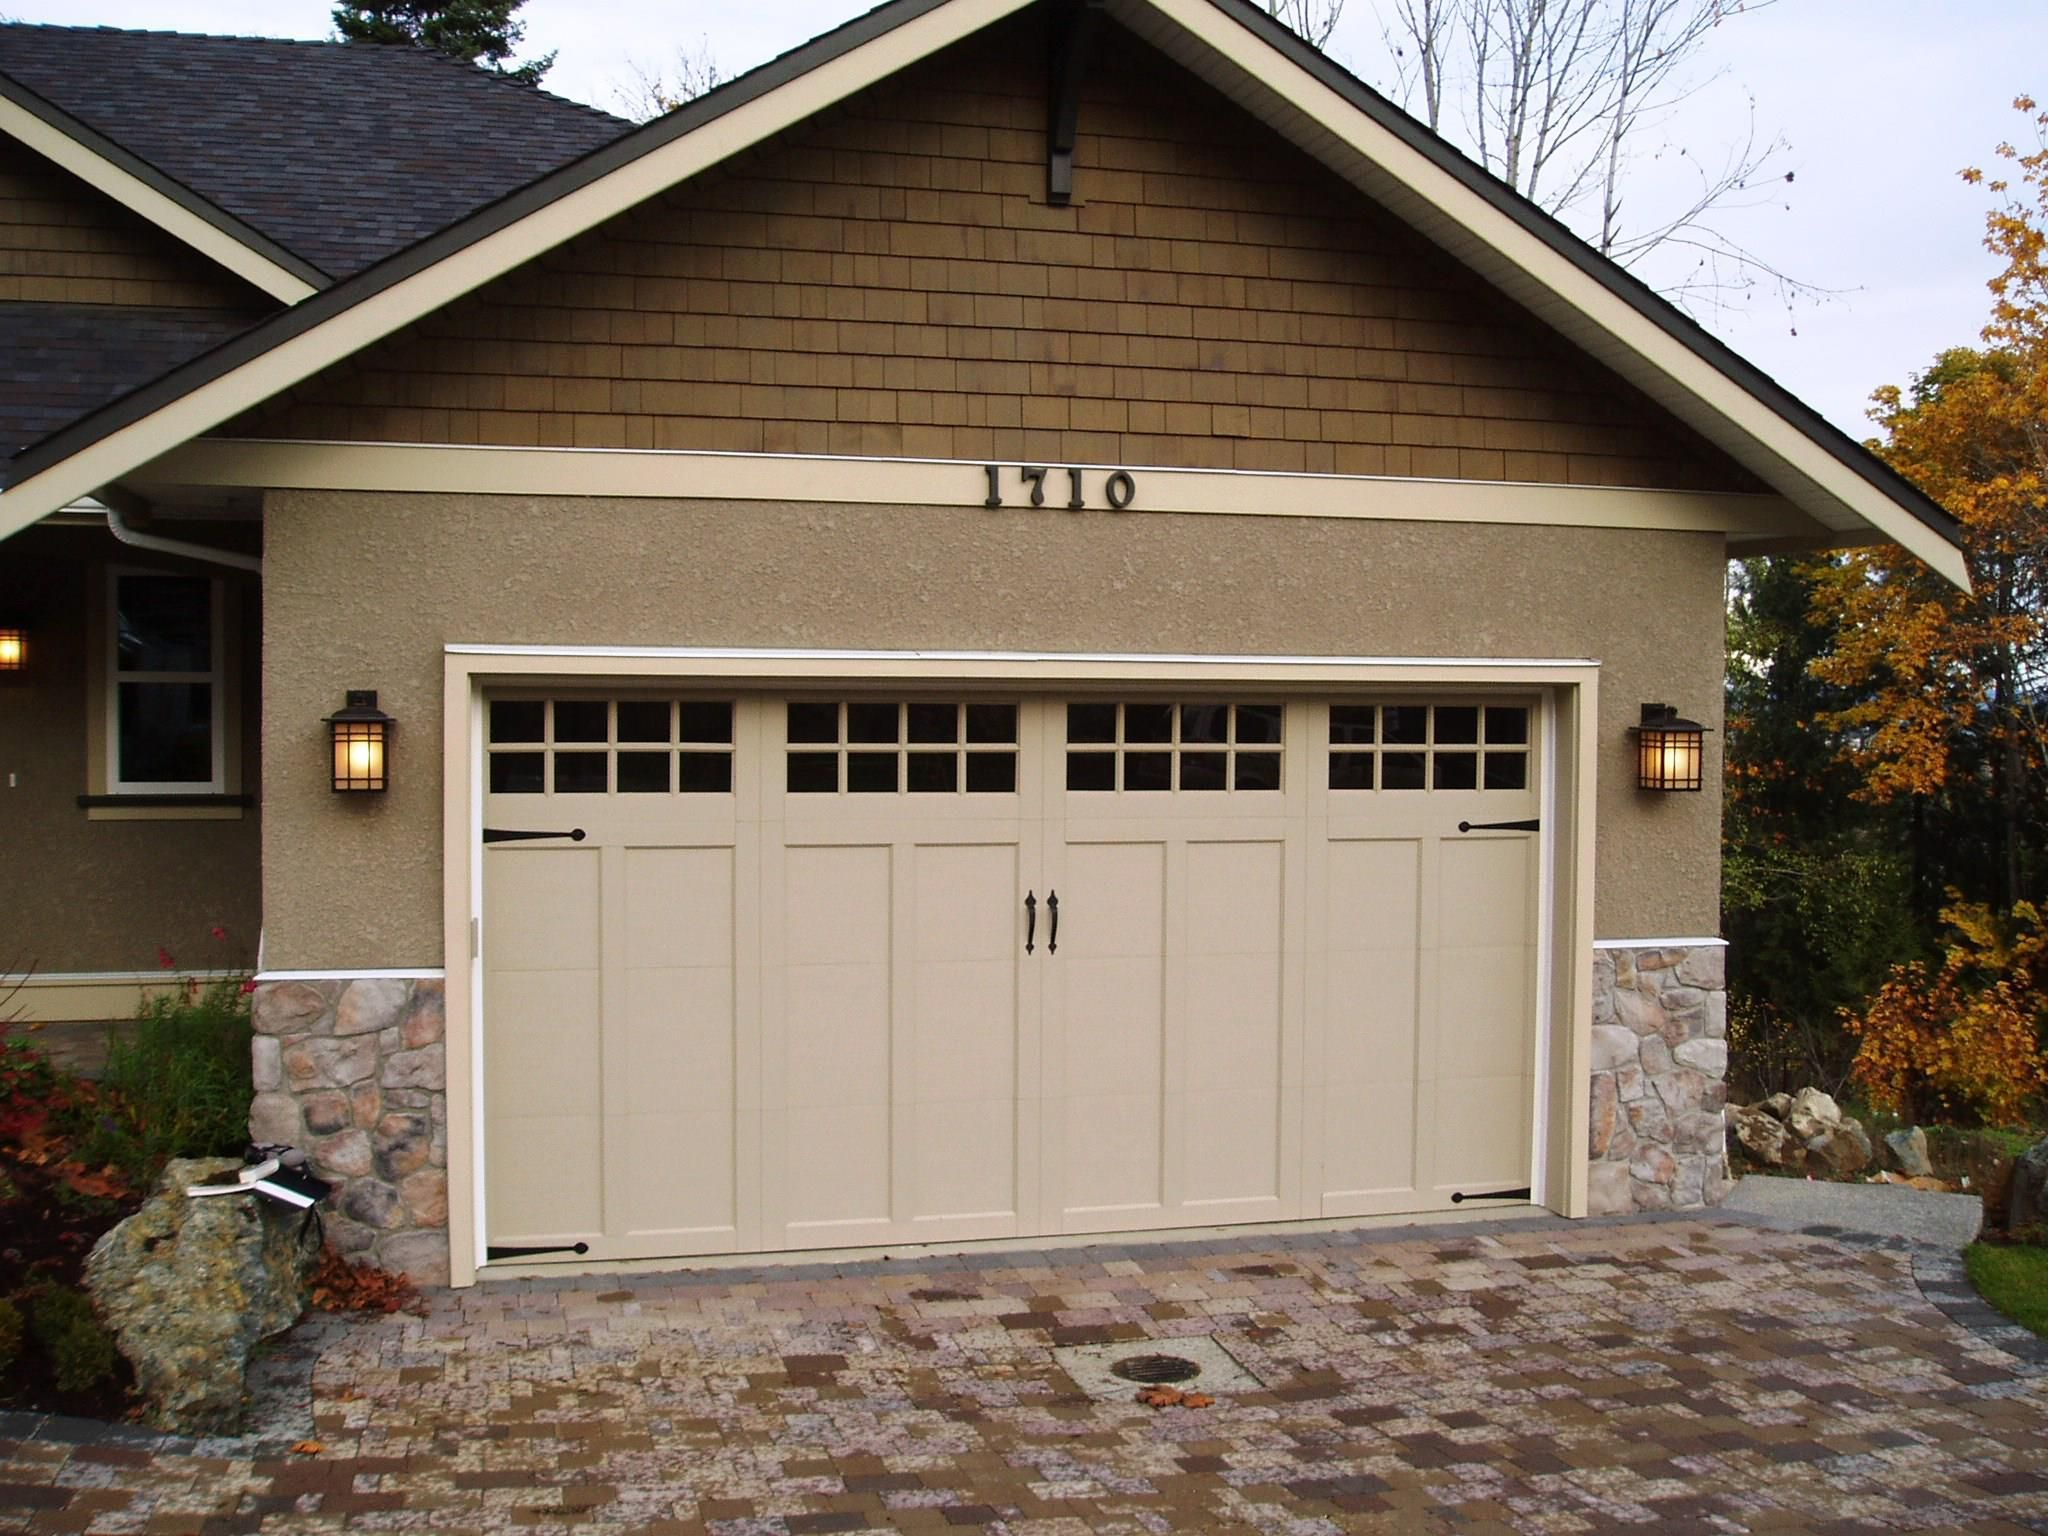 Pinterrific garage door makeover inspiration click on the image pinterrific garage door makeover inspiration click on the image link to see the top 10 garage door makeovers trending on clopays pinterest boards right solutioingenieria Choice Image